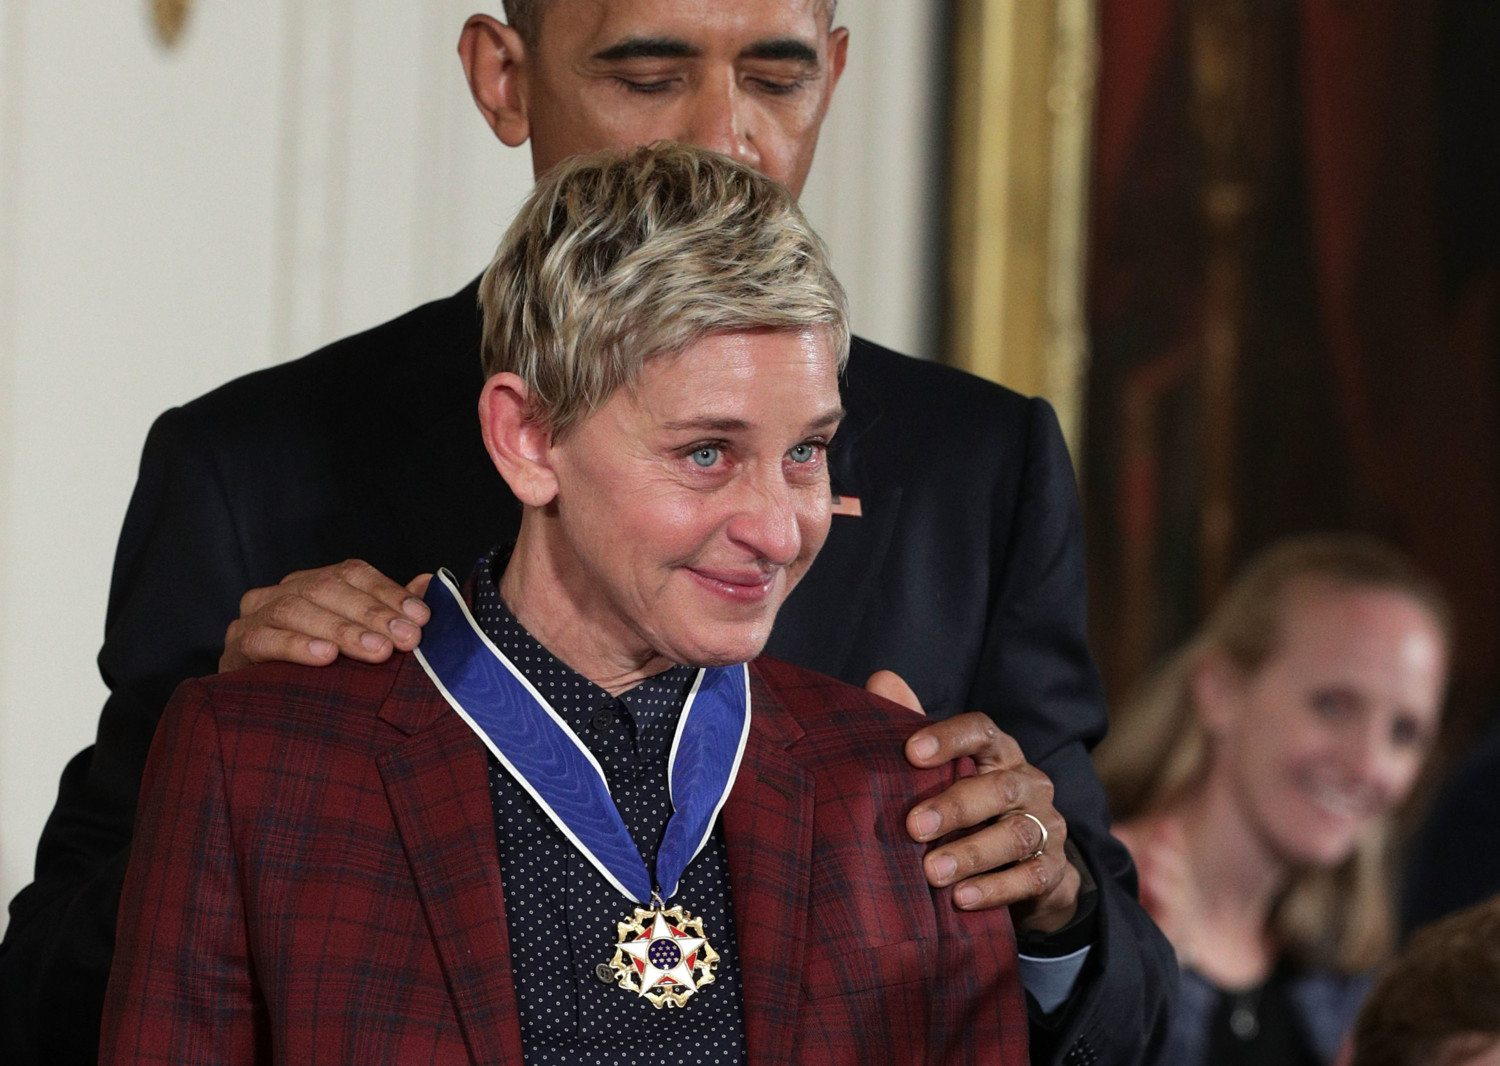 ellen degeneres medal photo